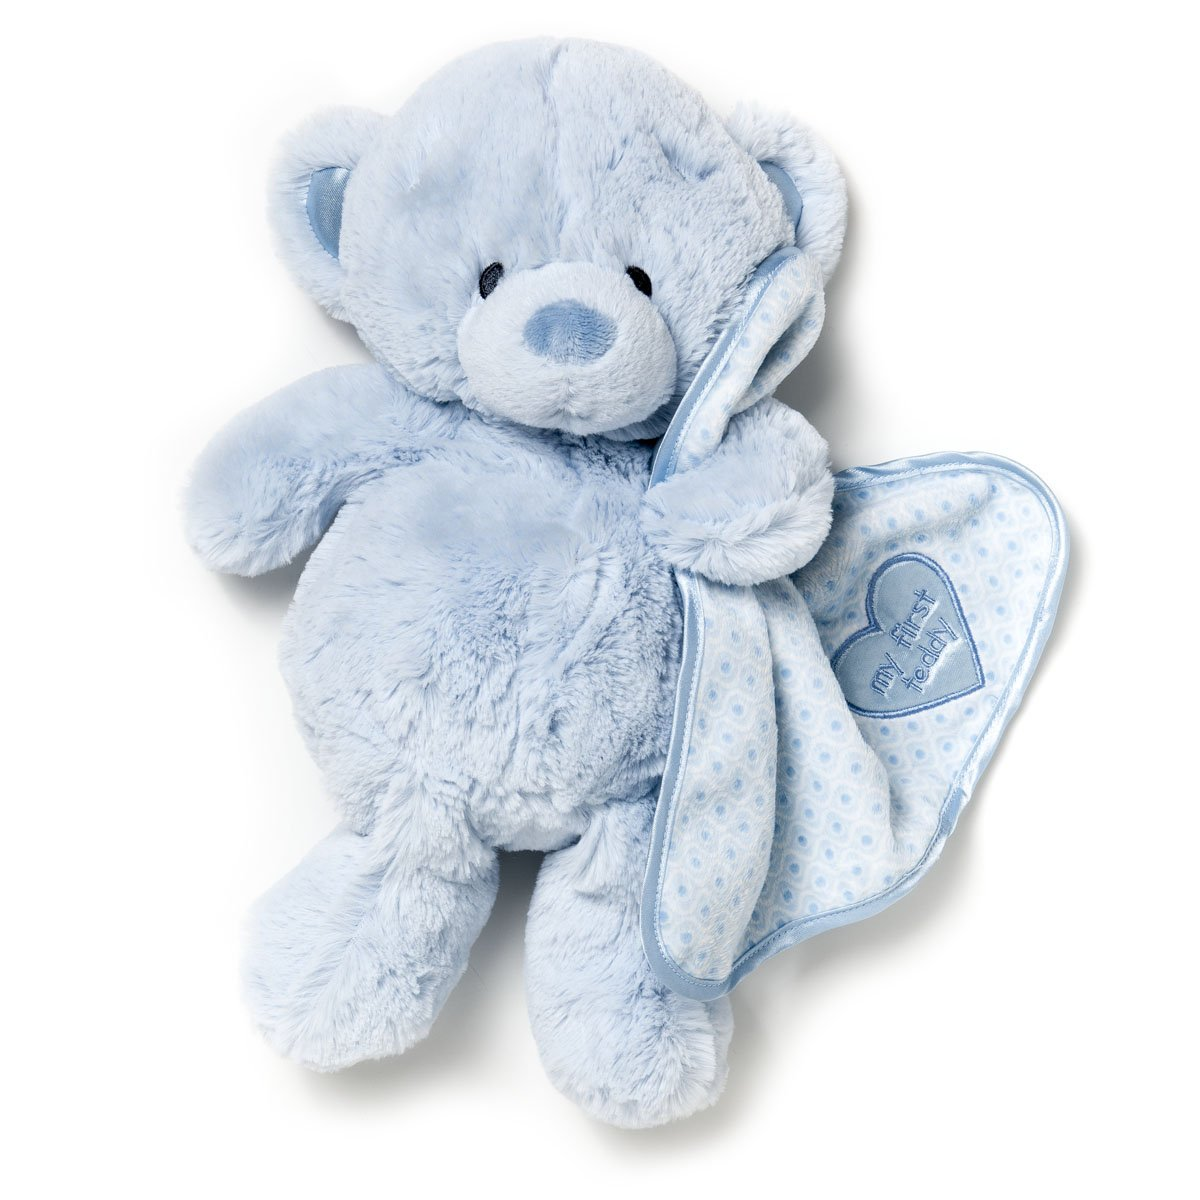 Nat and Jules My First Teddy Bear With Blanket Children's Plush Stuffed Animal Toy